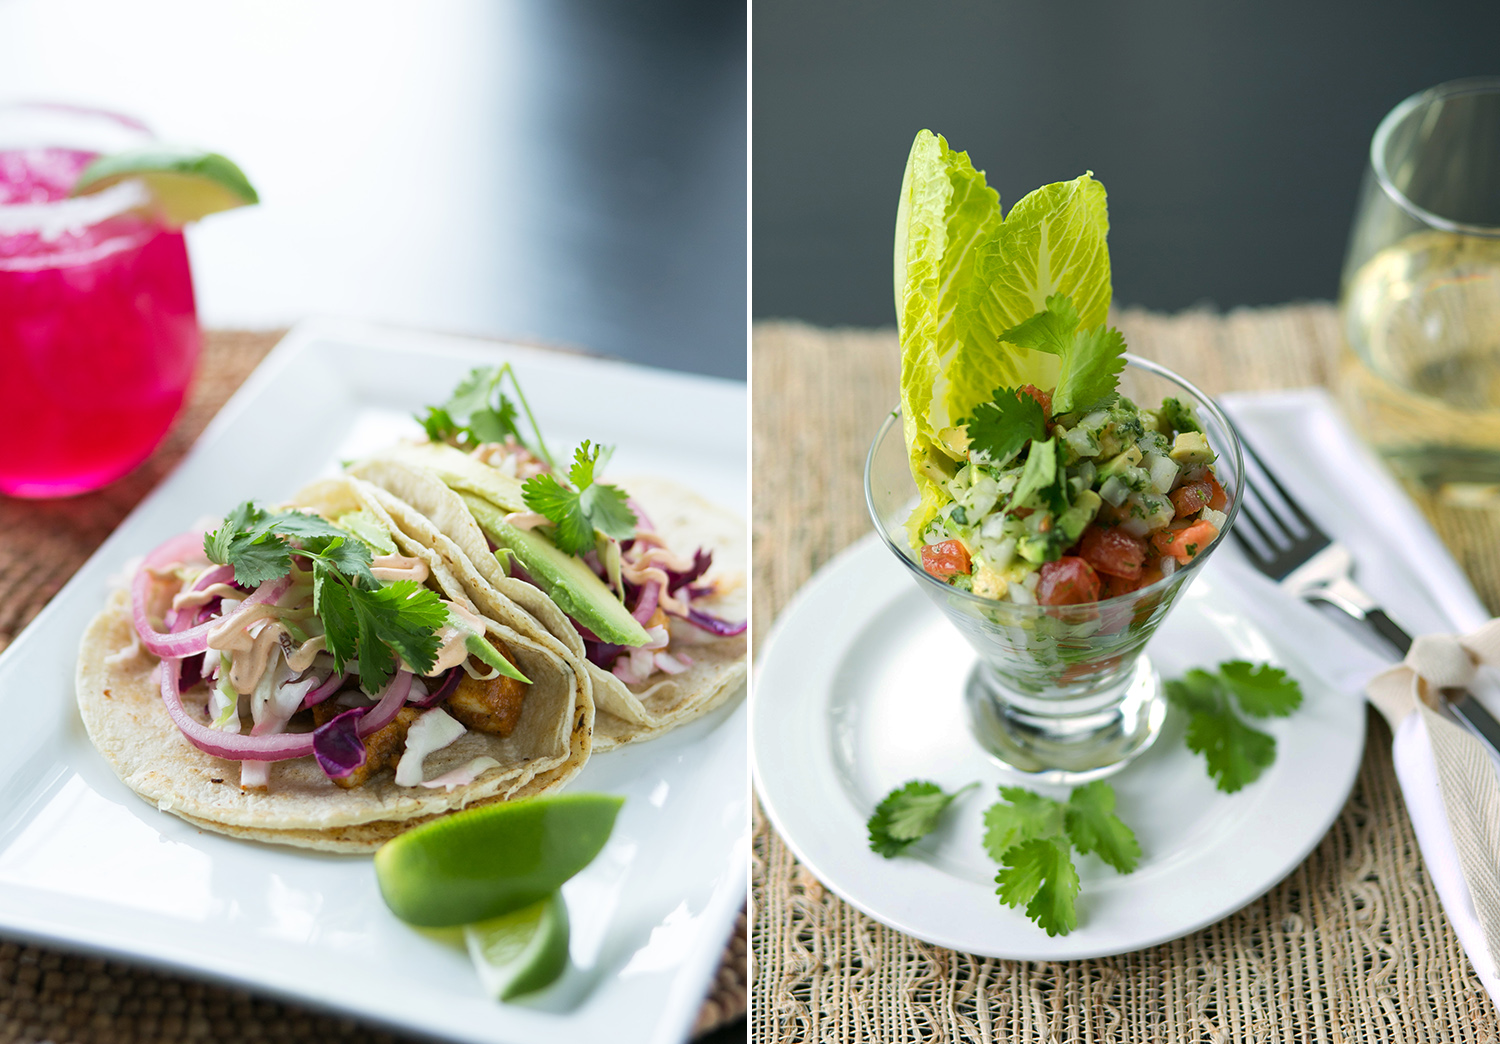 Restaurant food styling and photography by Dena Robles